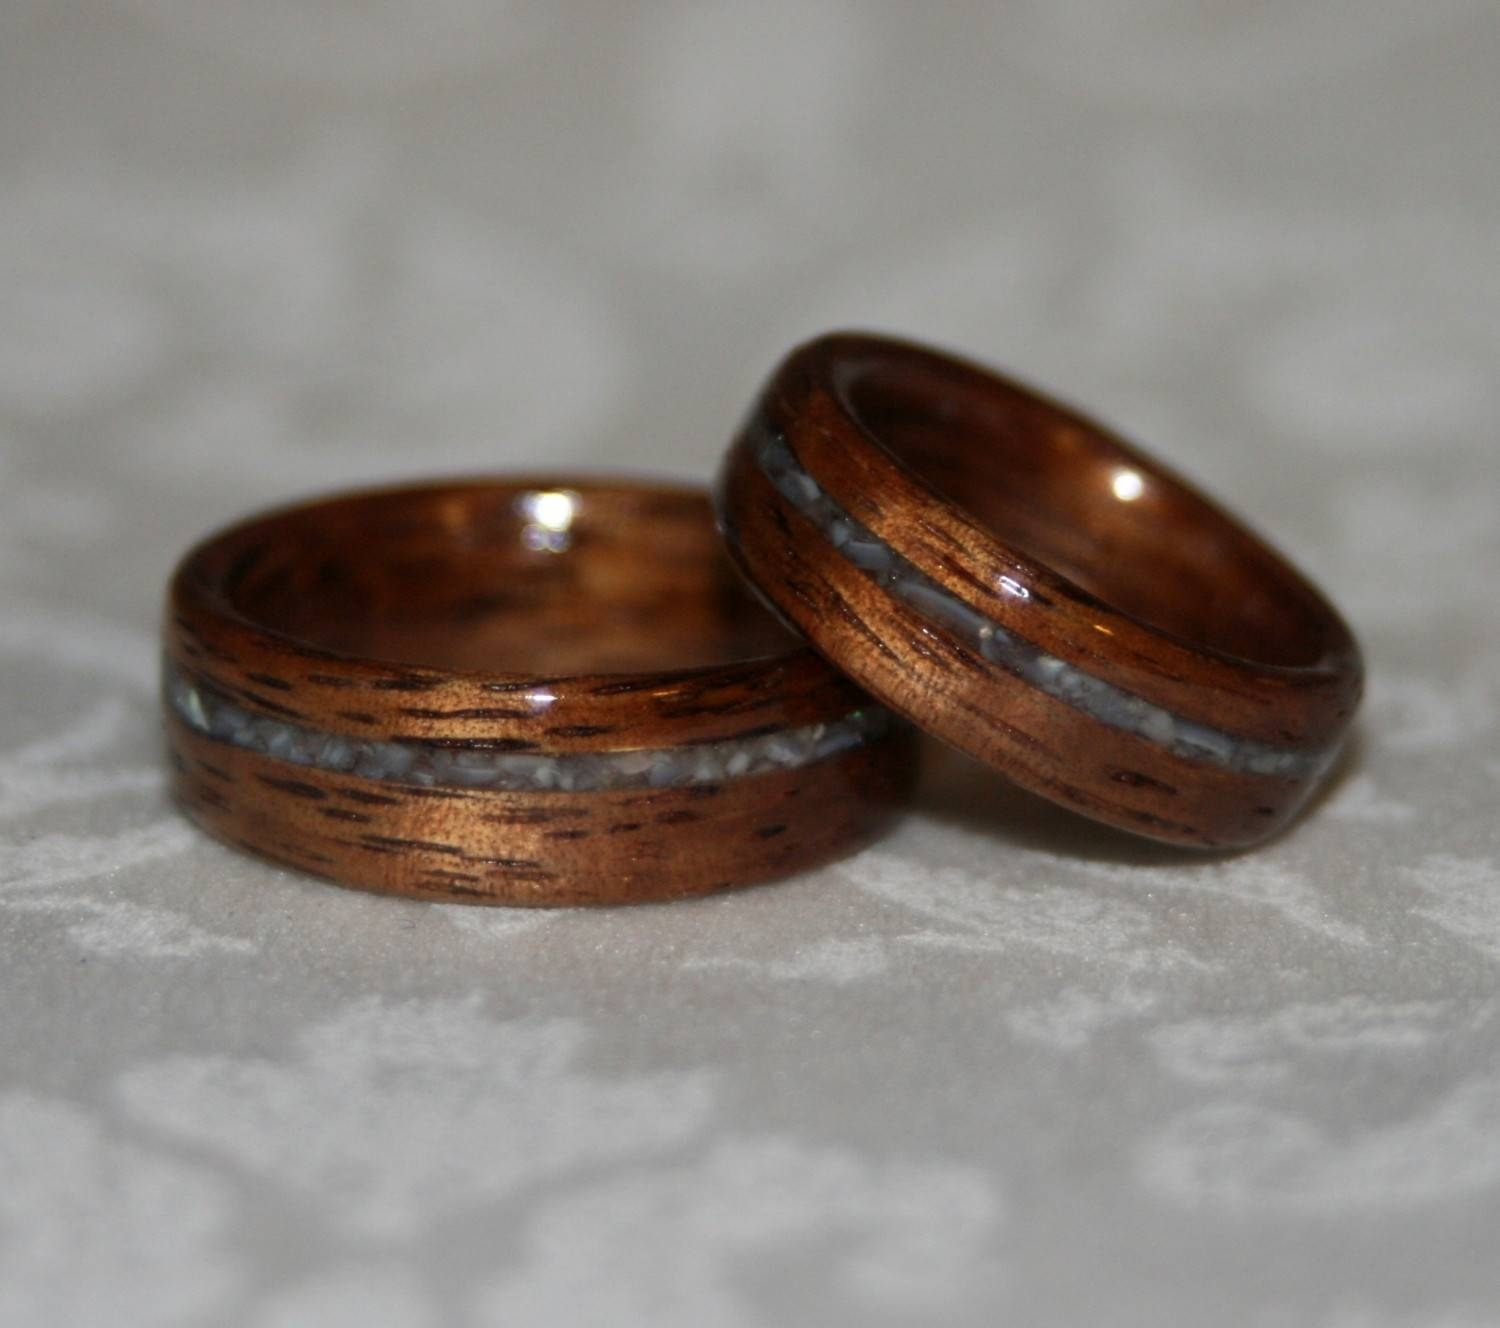 Wood Wedding Bands With Crushed Stone Inlay Bent Wood Method Intended For Wood Inlay Wedding Bands (View 15 of 15)